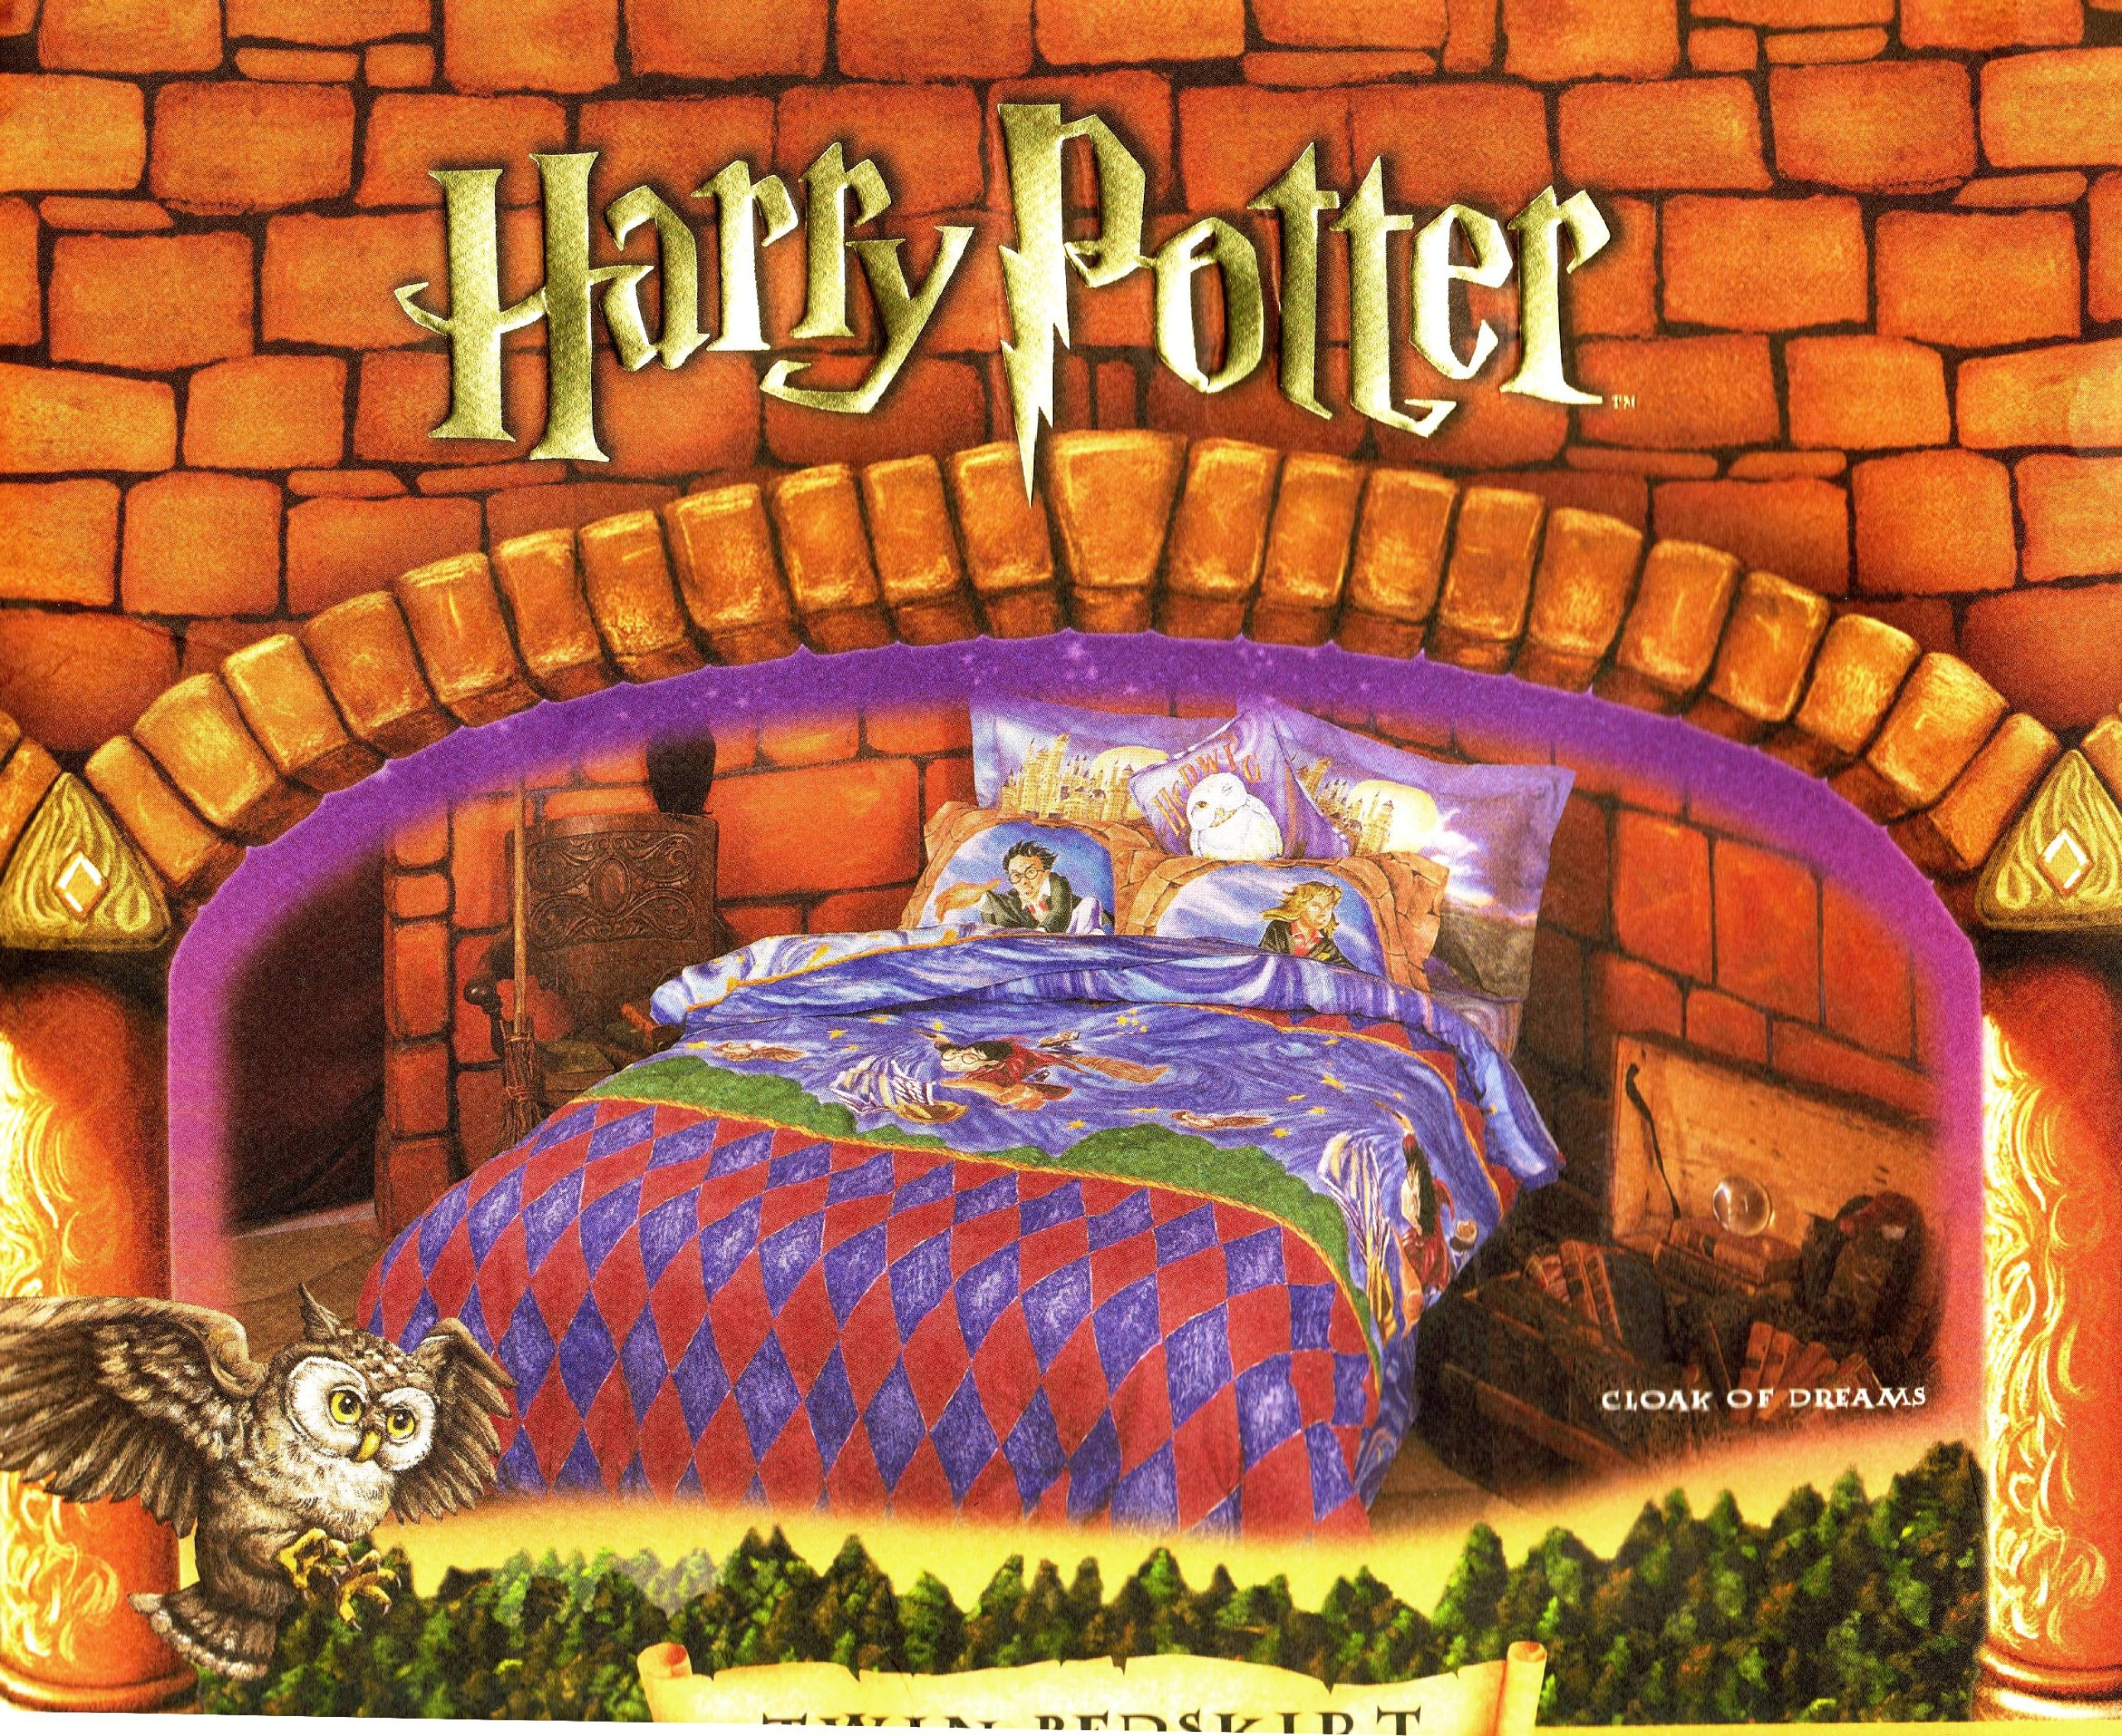 Harry Potter Twin Bedskirt Dust Ruffle ''Cloak of Dreams'' 2000 by Harry Potter, Warner Brothers (Image #1)